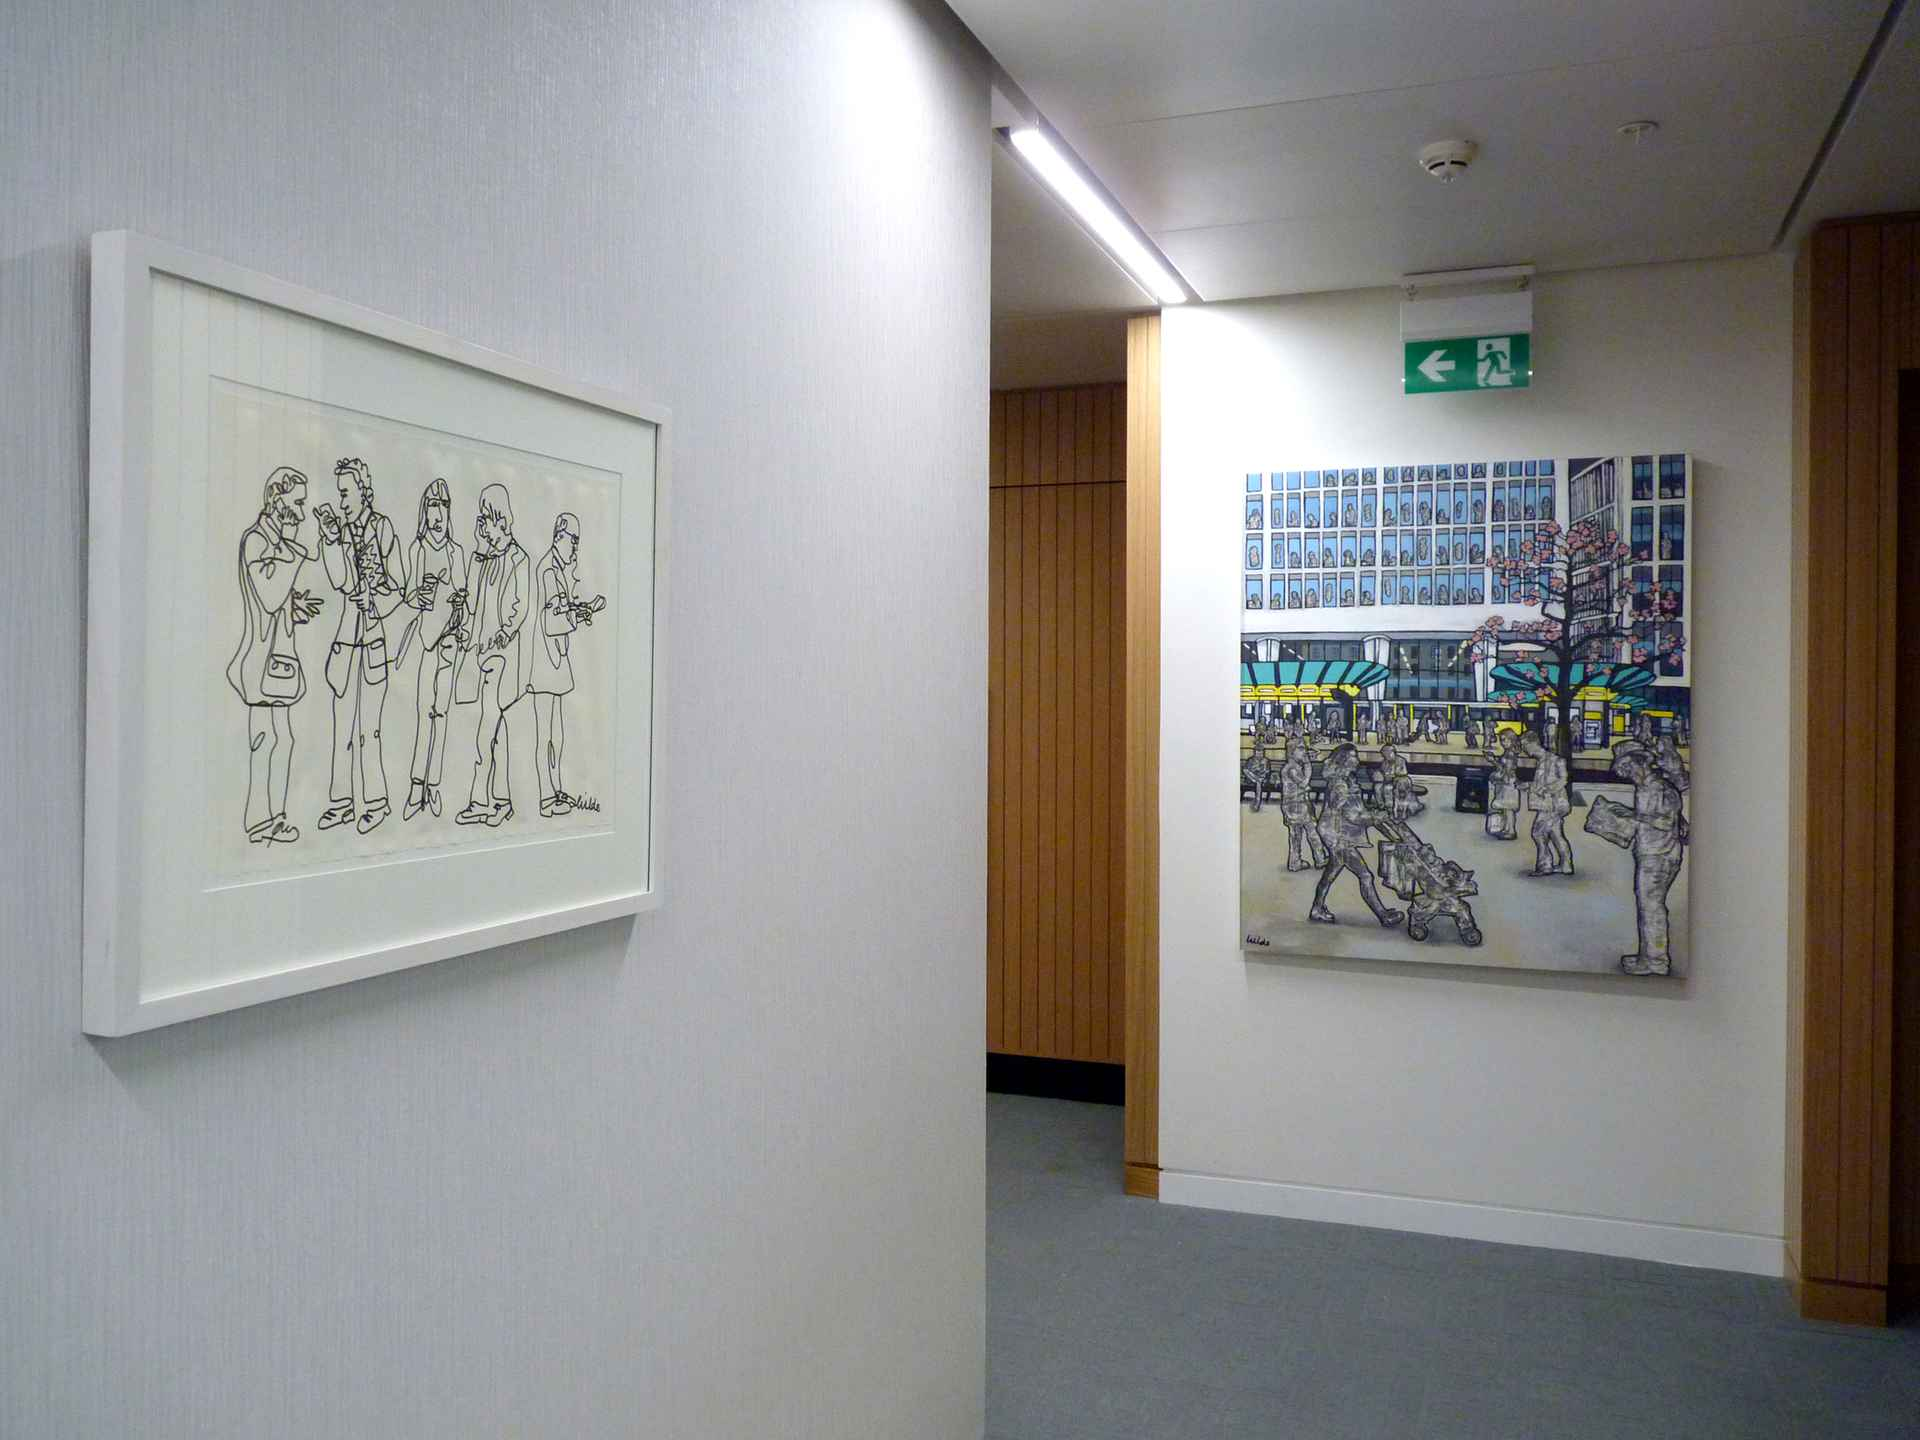 Reception area featuring original commission by EY (Ernst & Young)